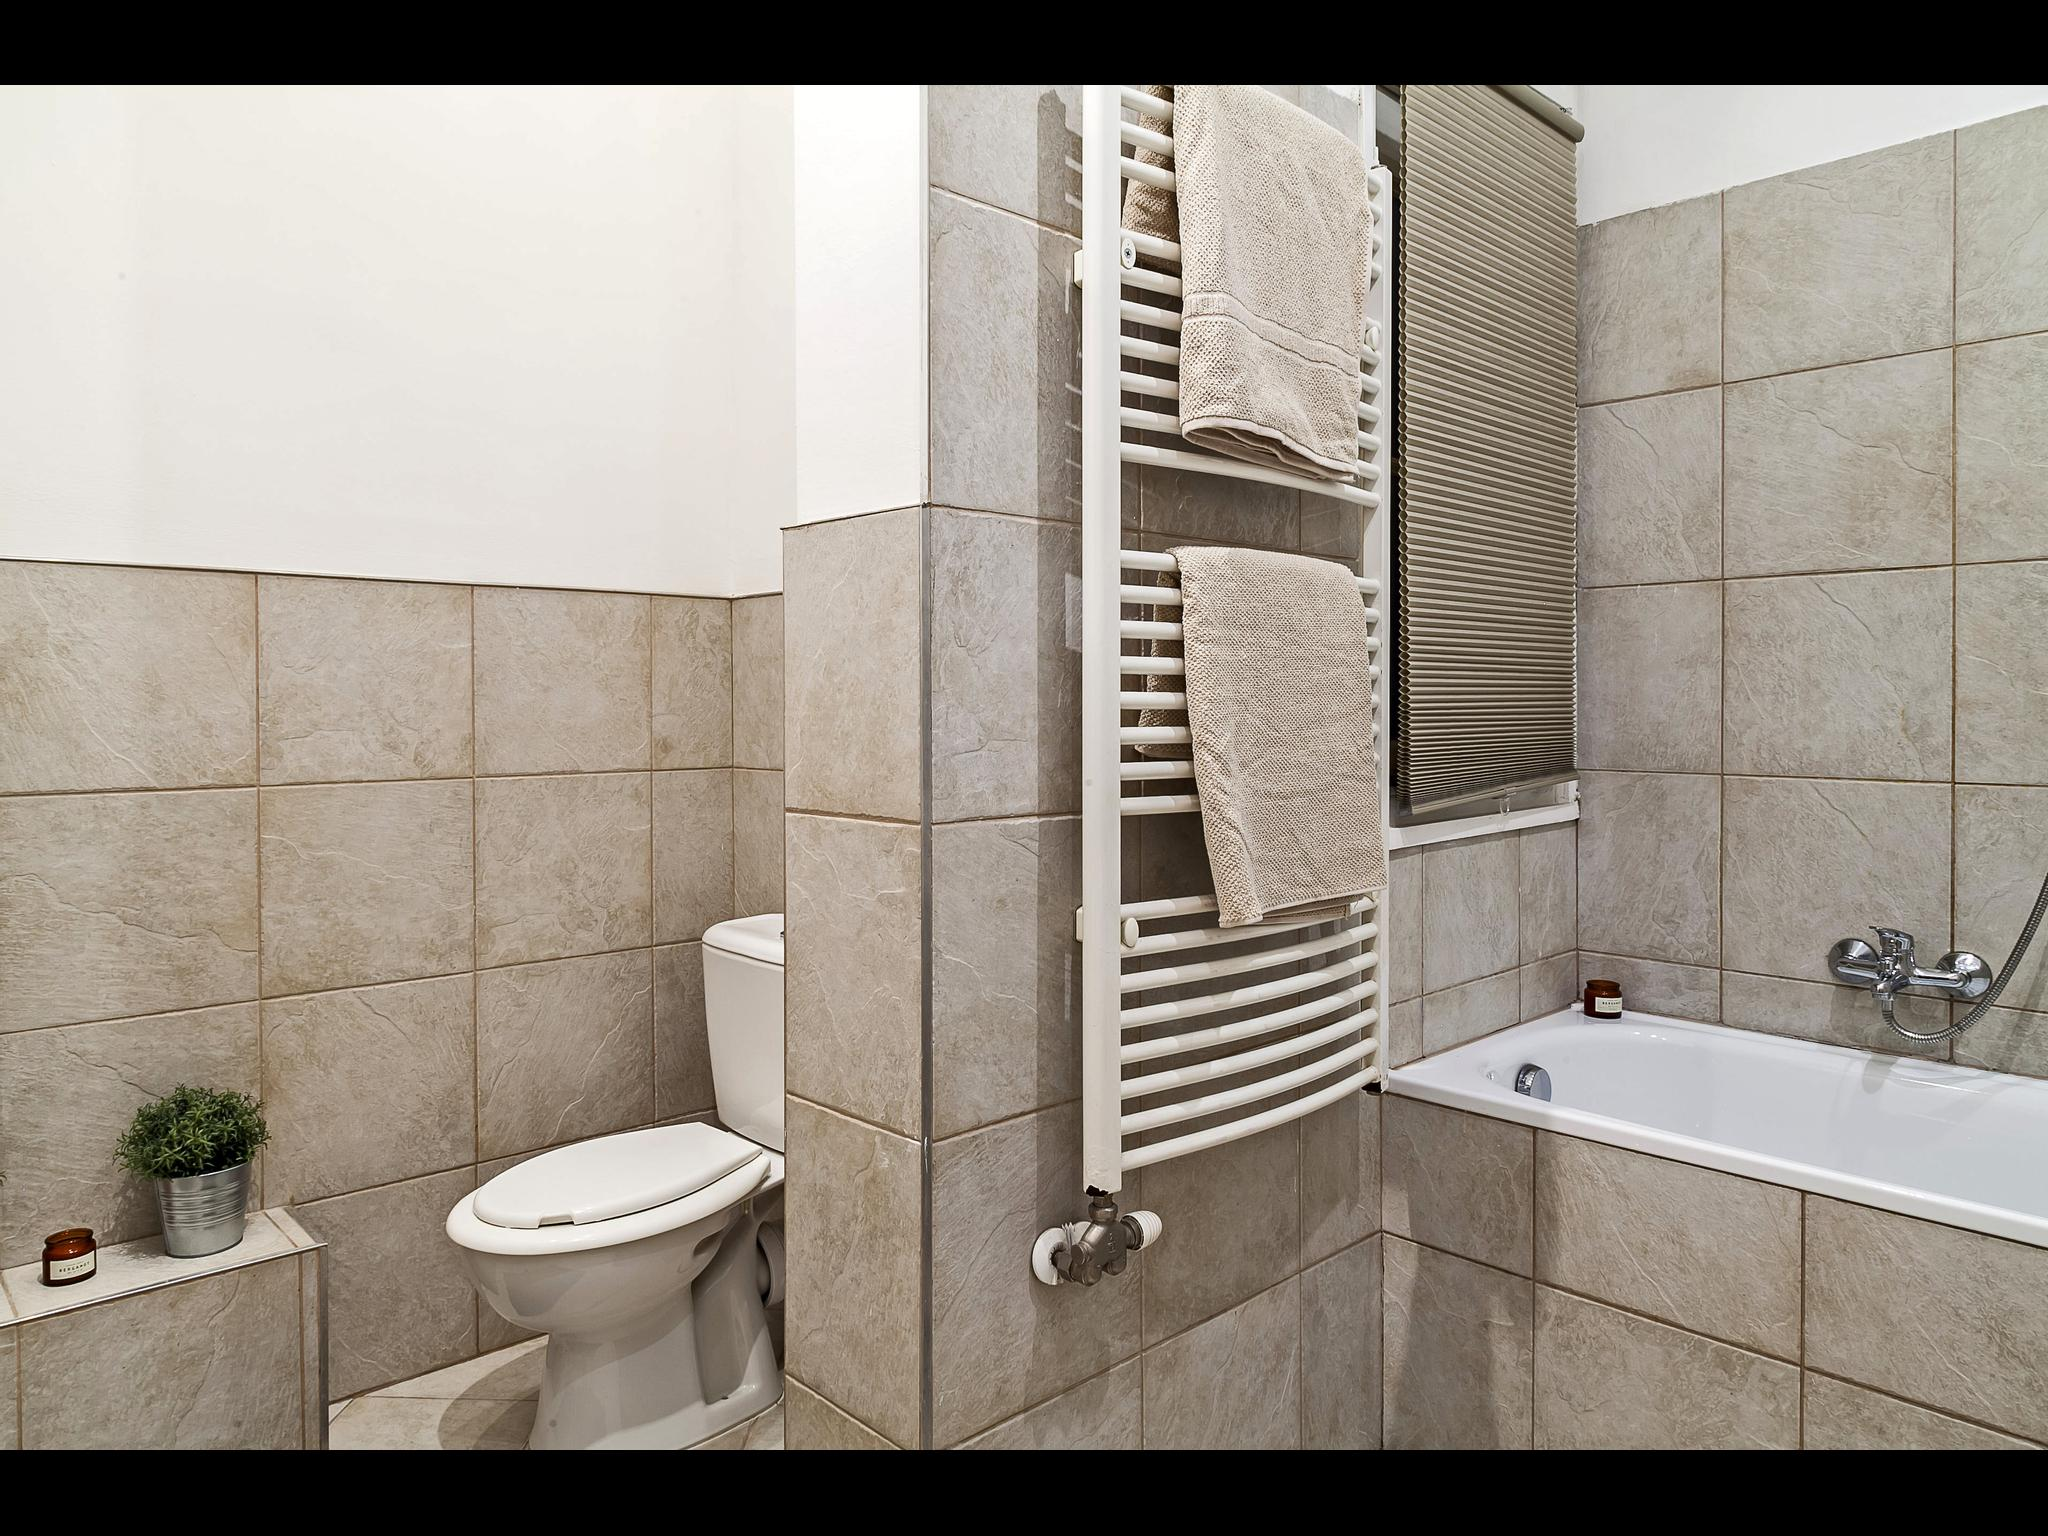 Nagymez 4 - Room with bathroom in Budapest